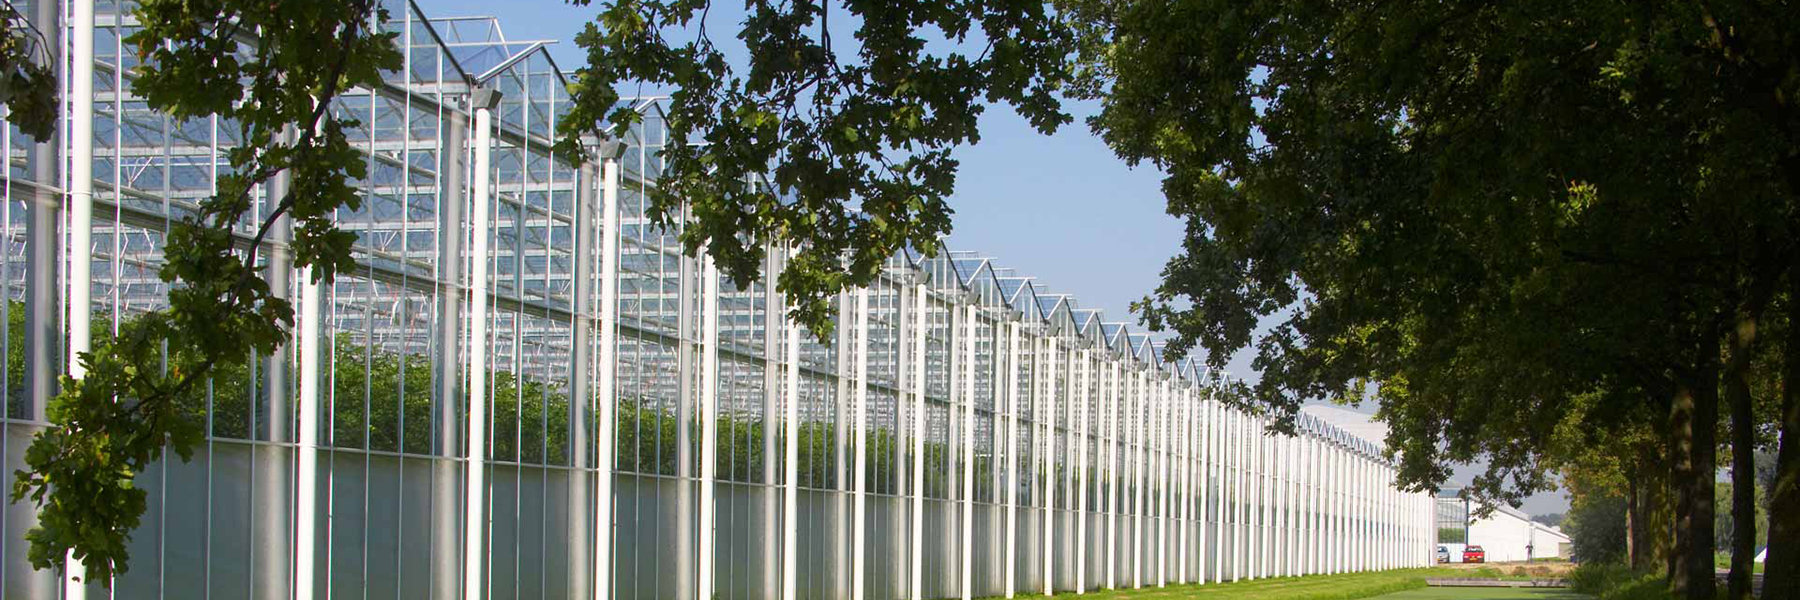 Venlo Greenhouse Row